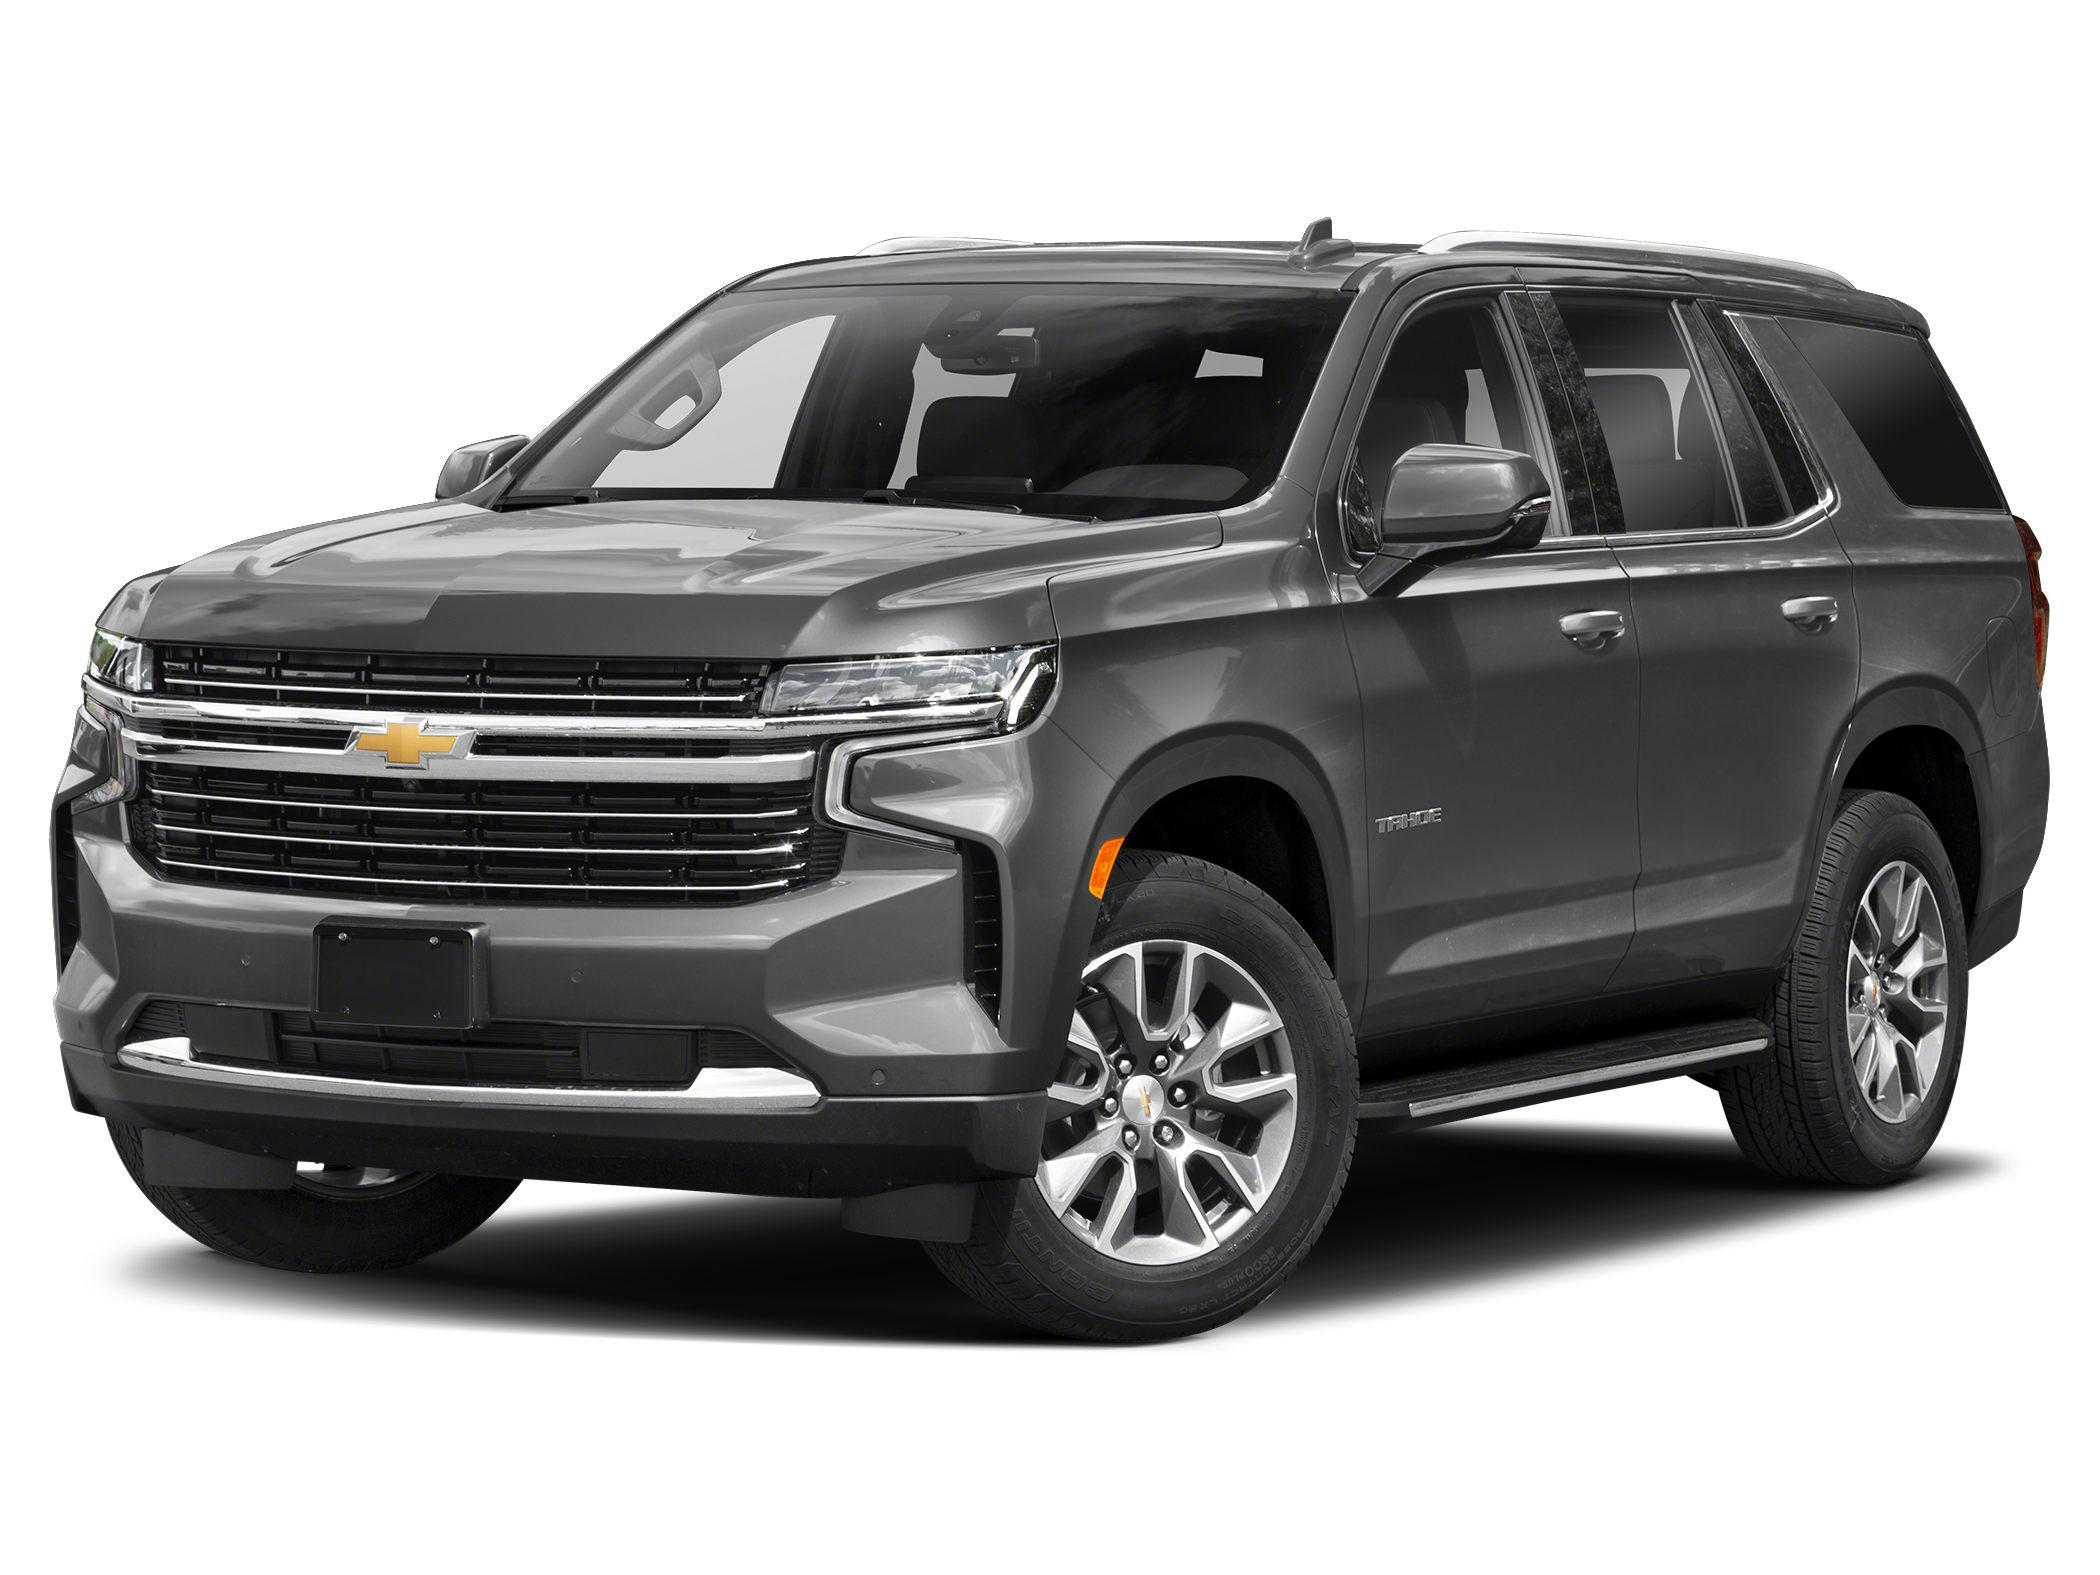 2020 Chevrolet Tahoe For Sale in Princeton WV | Ramey ...